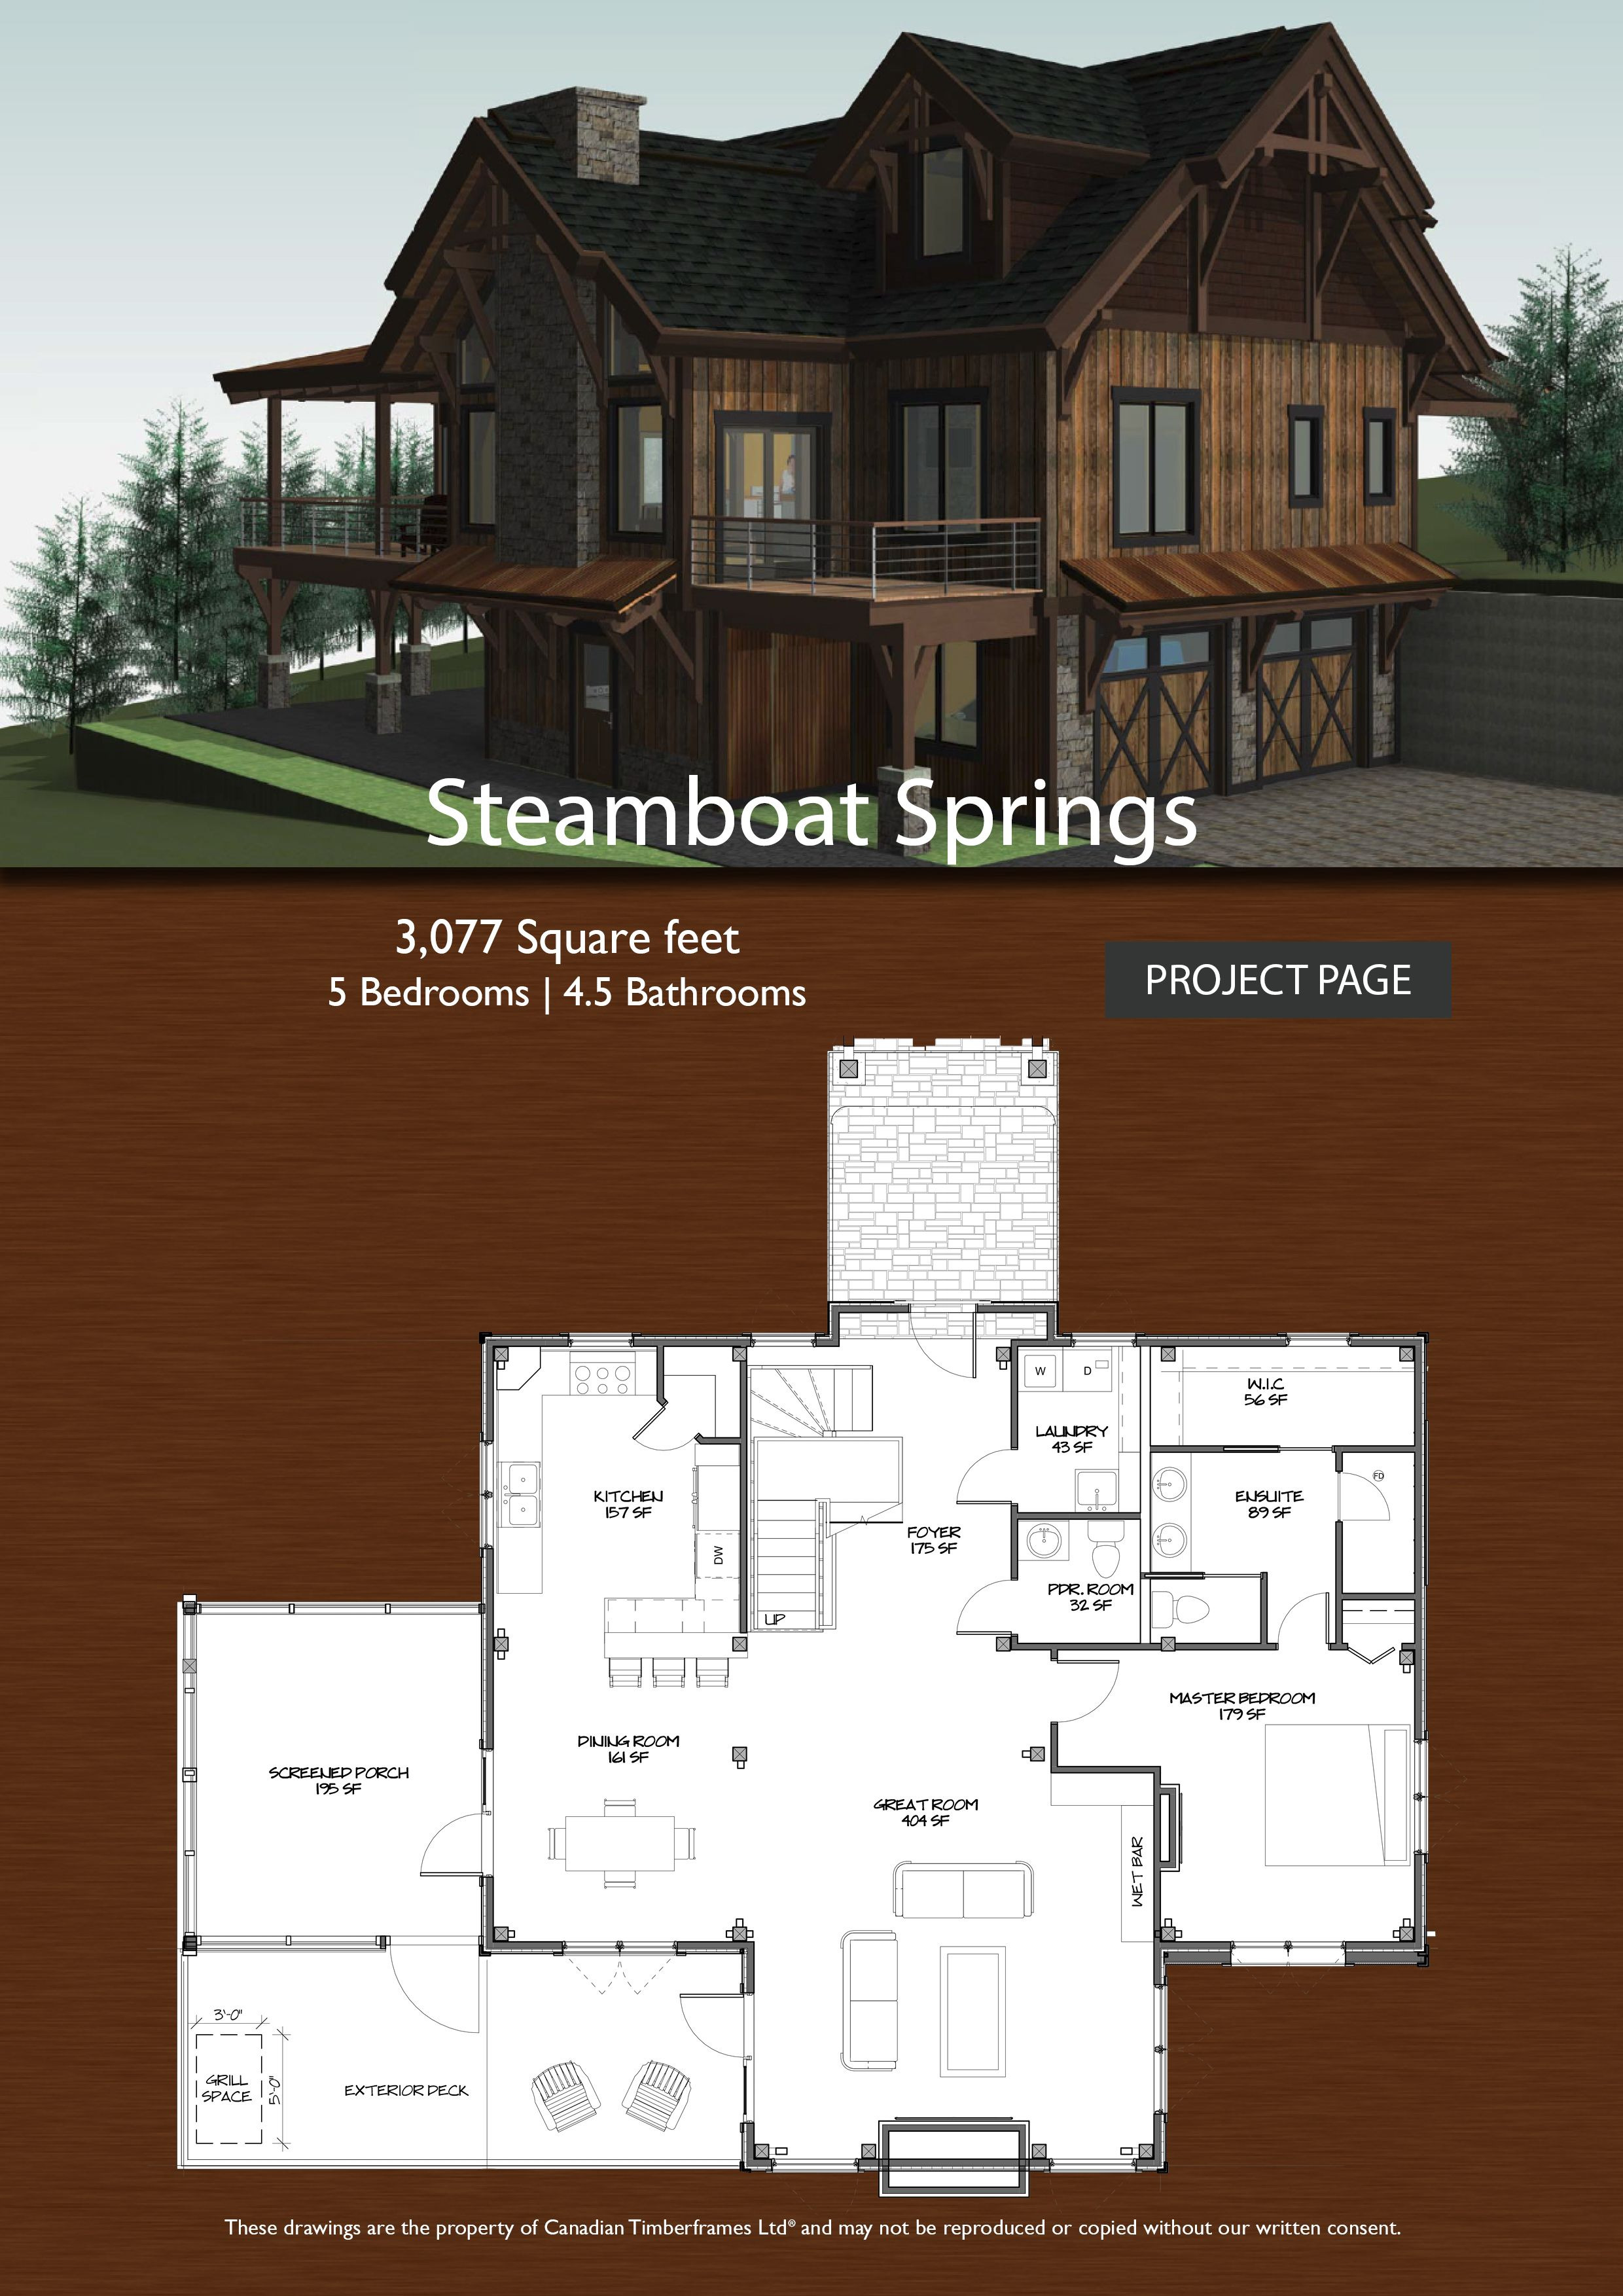 4 Bedroom Timber Frame House Plans Awesome Steamboat Springs Timber Frame Designs